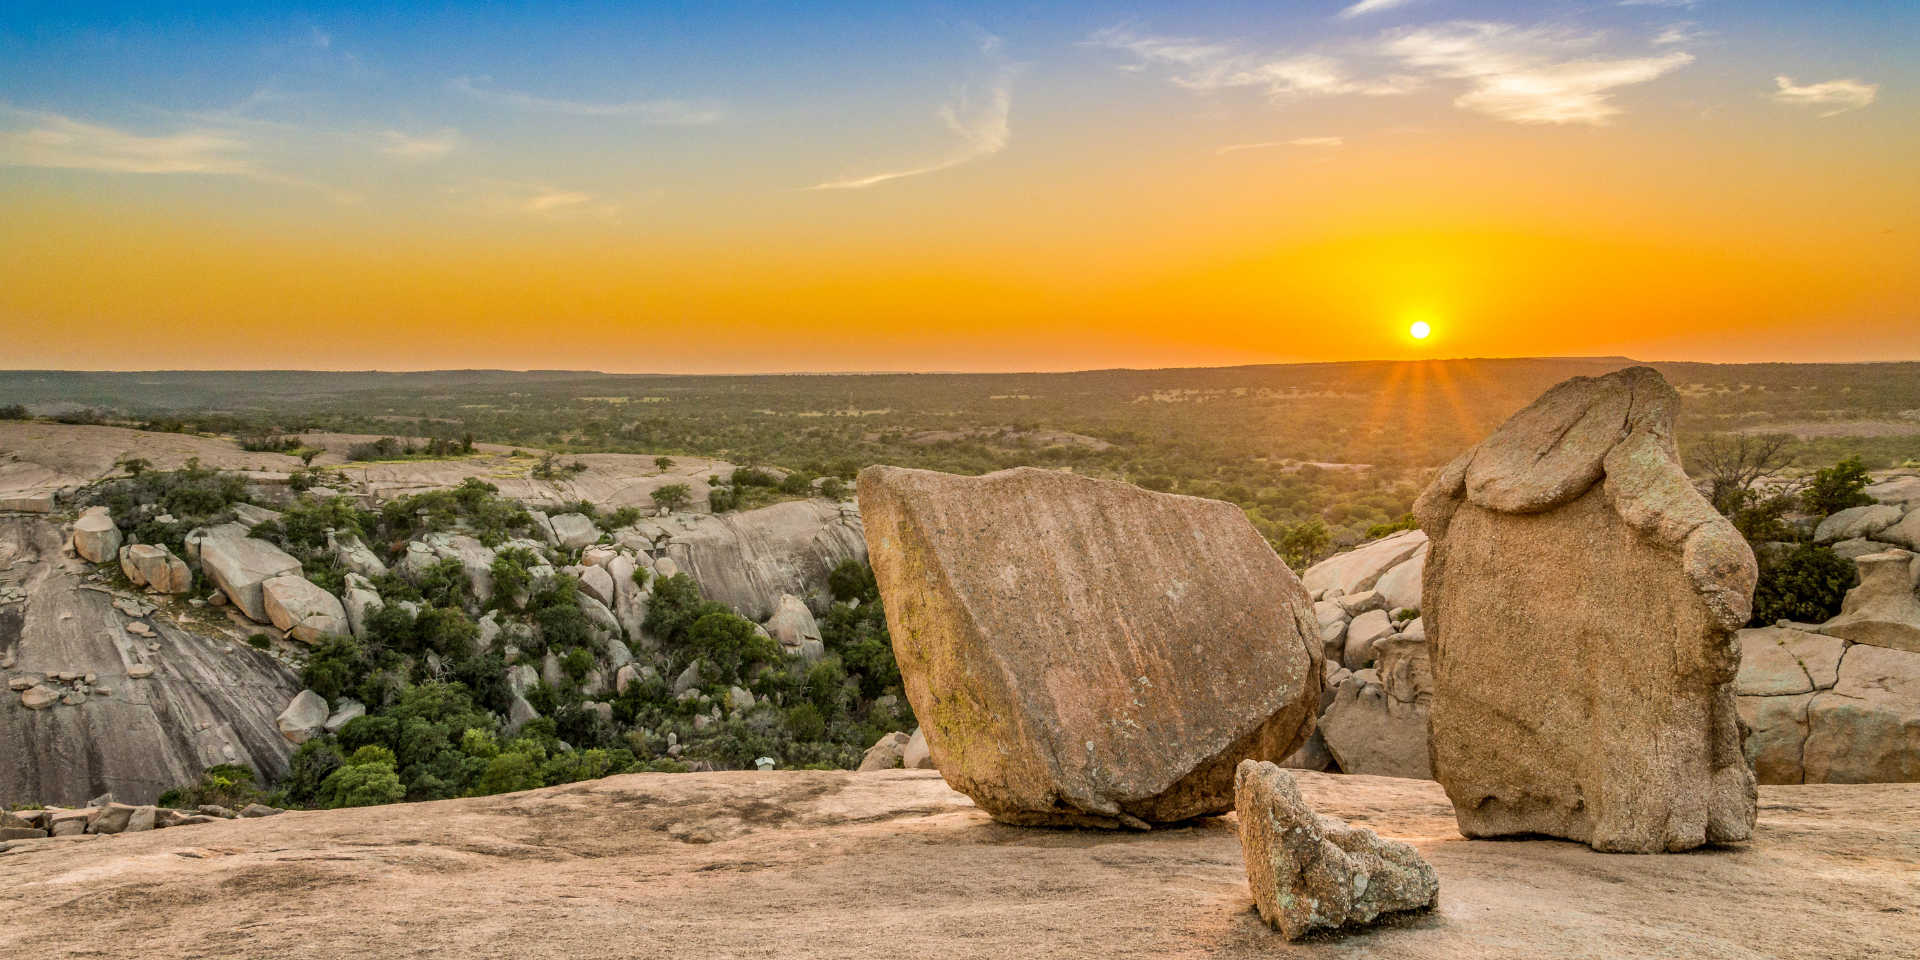 All Natural Texas Hill Country – That's a Fact